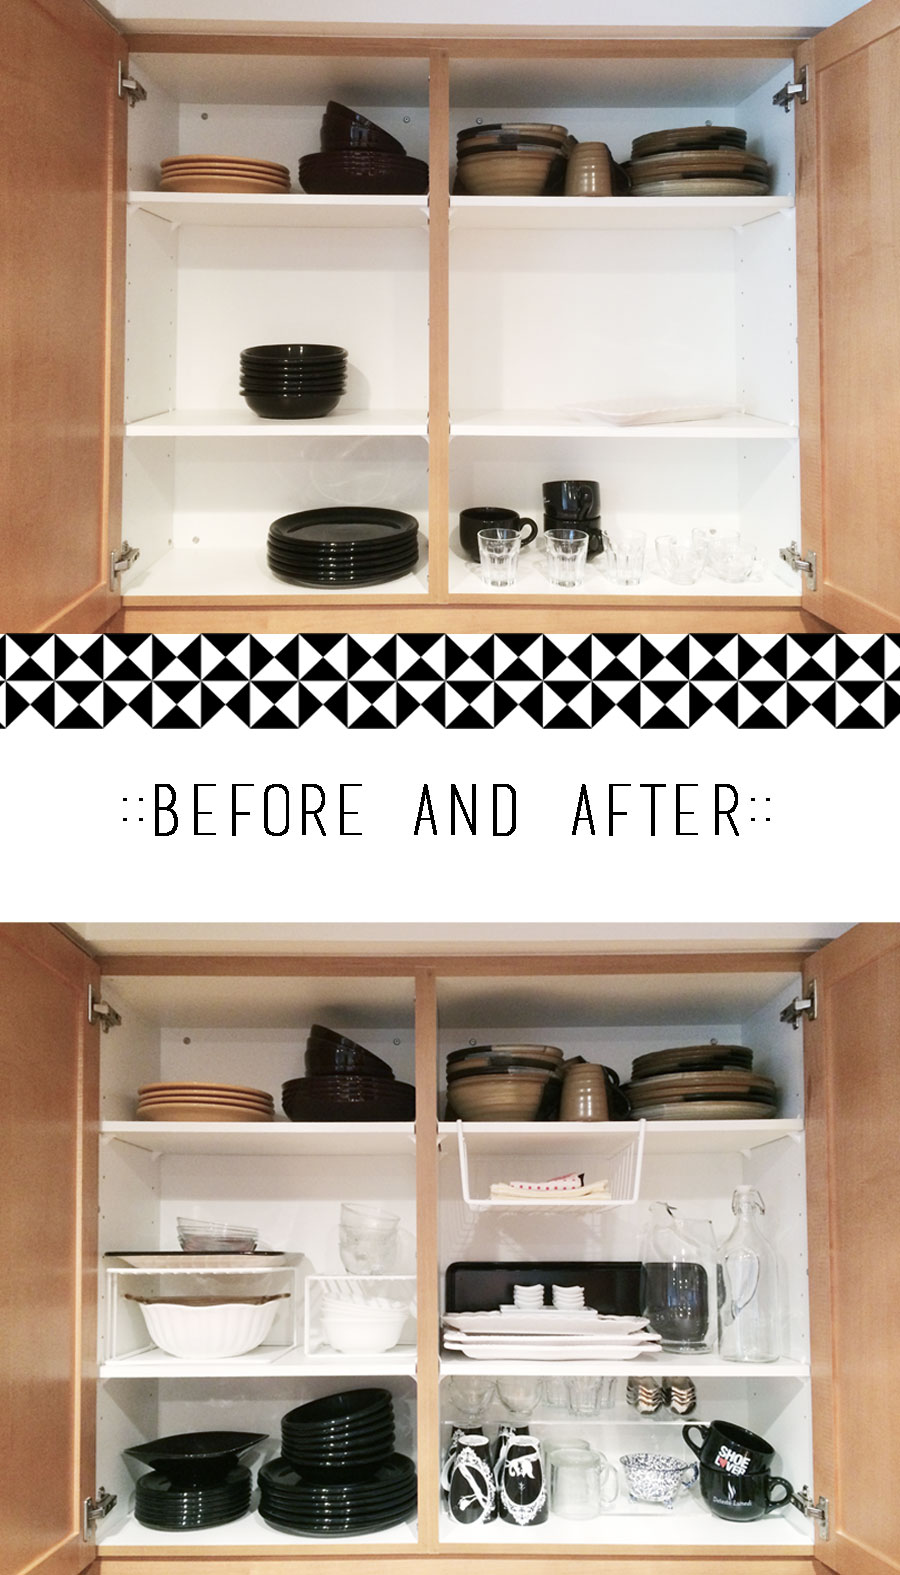 kitchen-organization-before-after.jpg